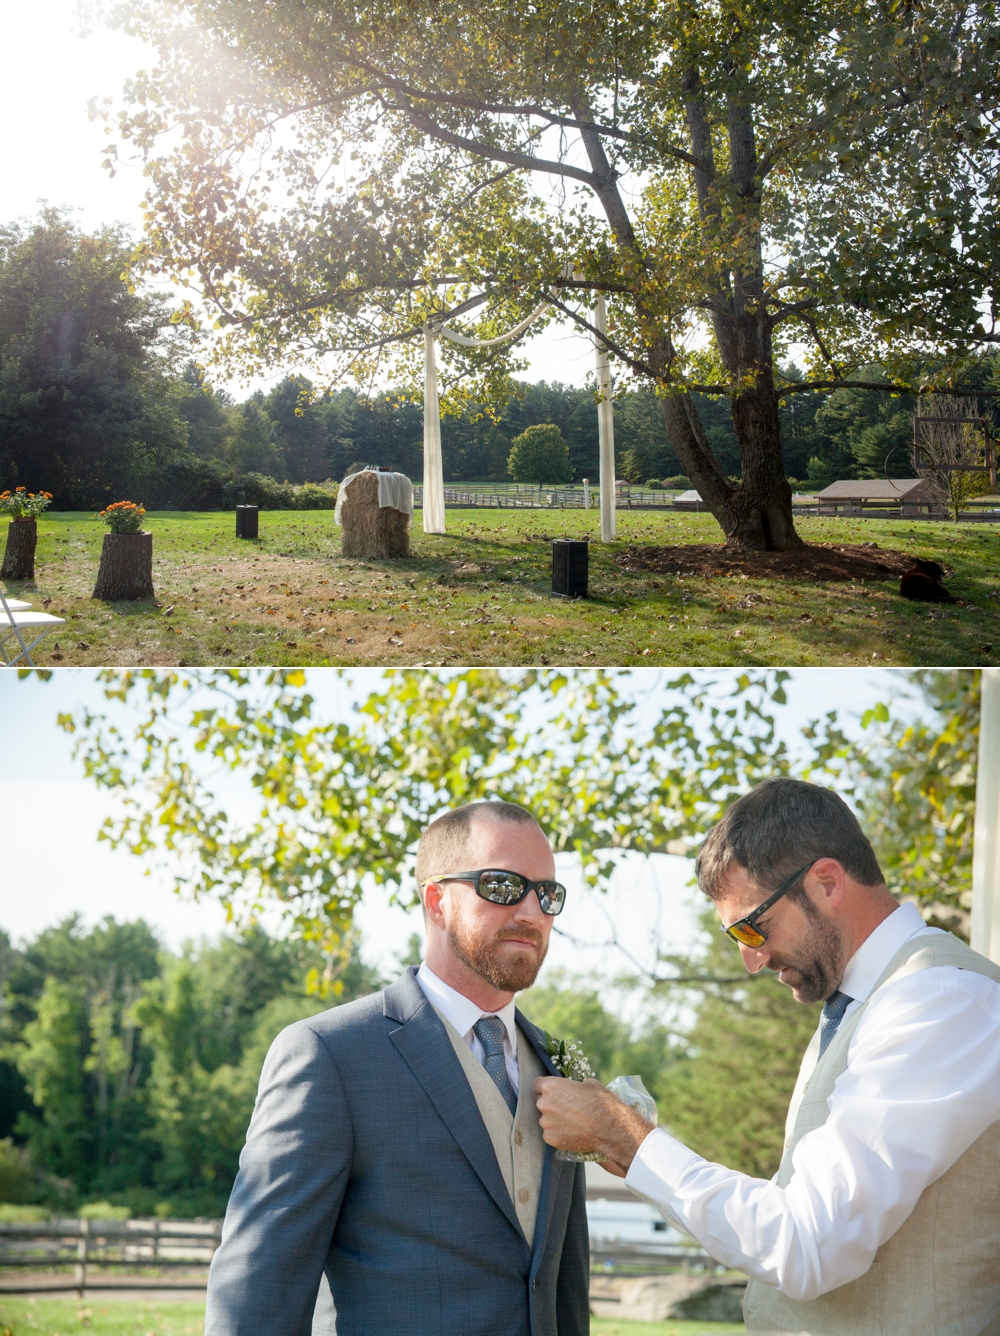 BearSpotFarmWedding_Nikki&Alex_0014.jpg